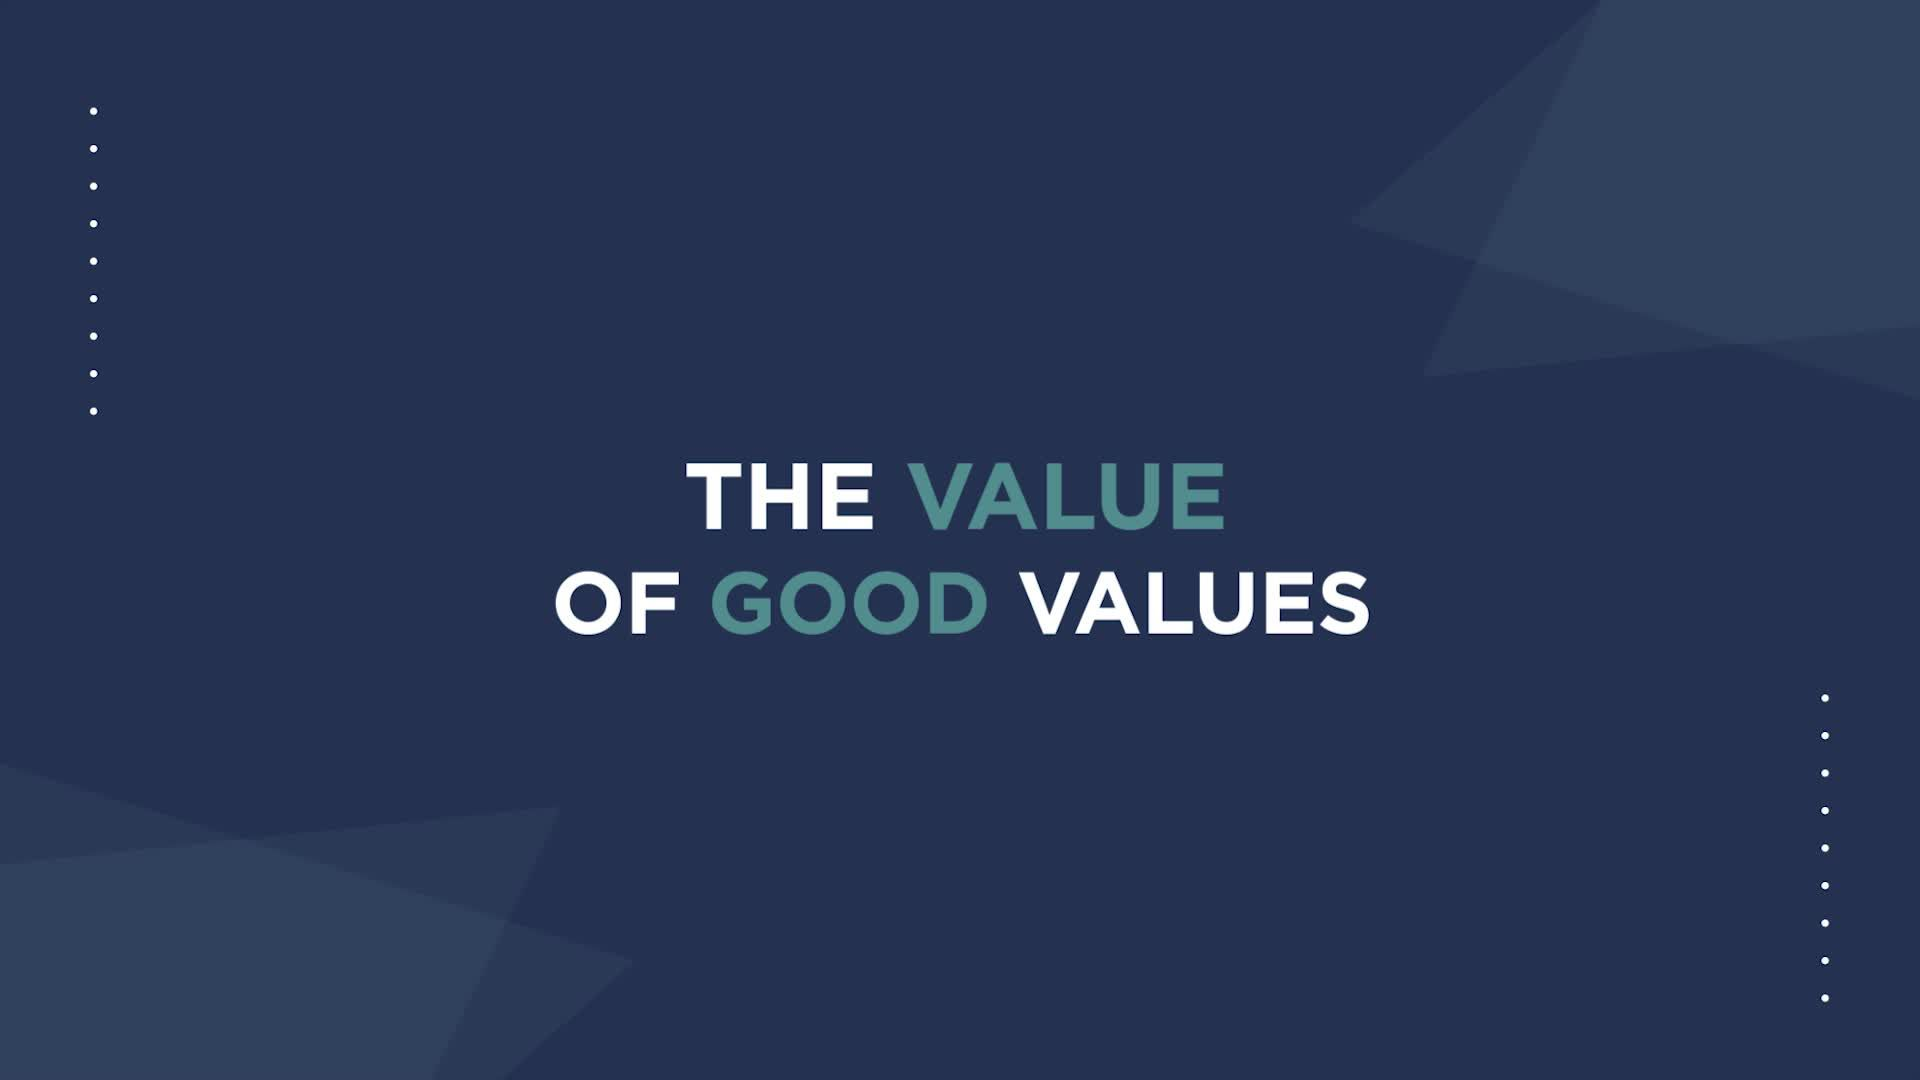 The Value of Good Values